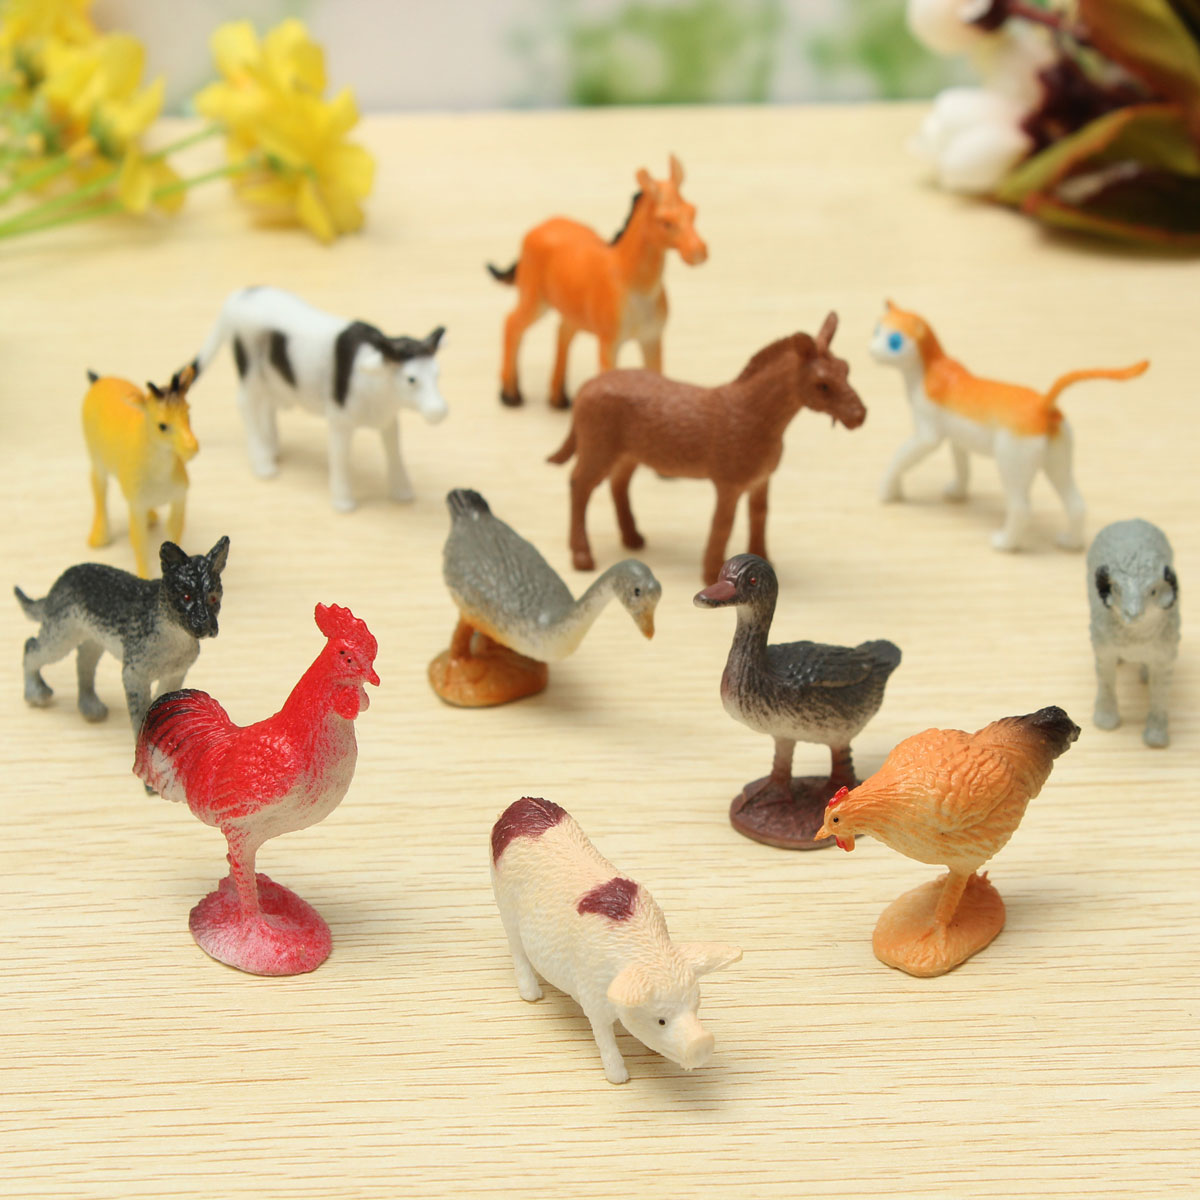 12PCS Plastic Farm Yard Figure Pig Cow Horse Dog Animal Model Playset Toy Baby Children... by